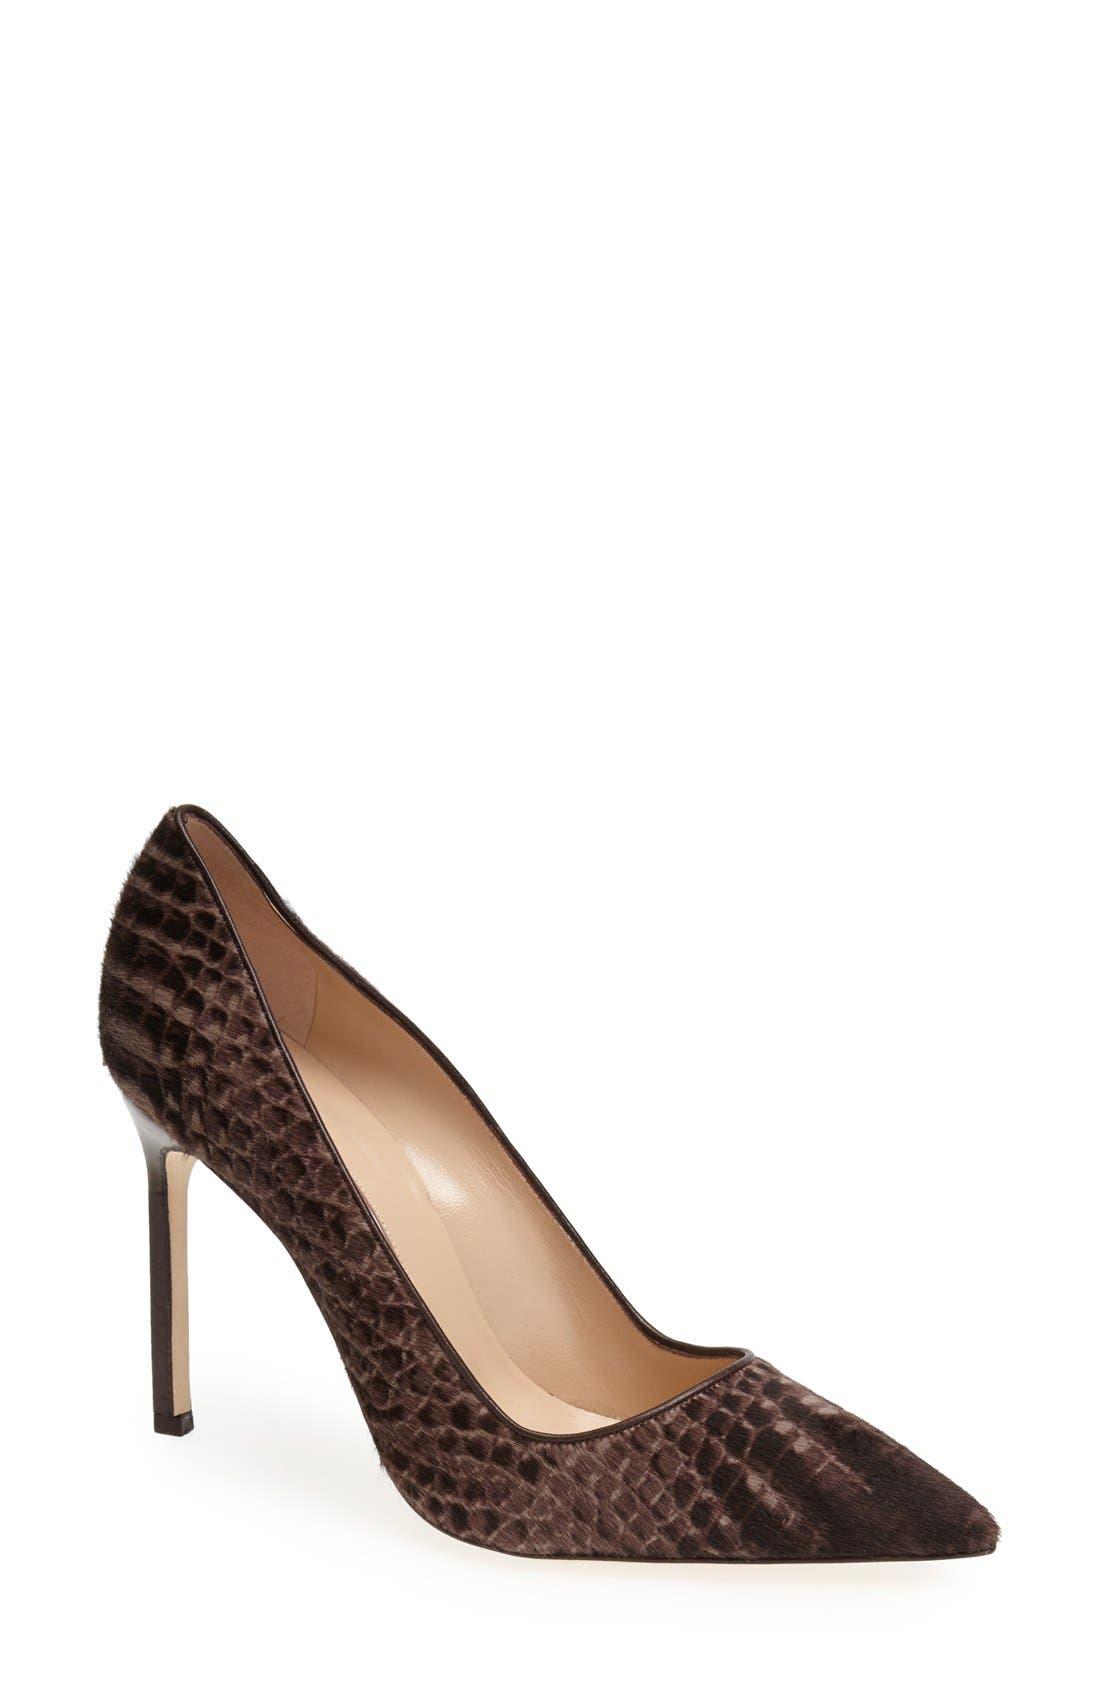 Main Image - Manolo Blahnik 'BB' Calf Hair Pump (Women)